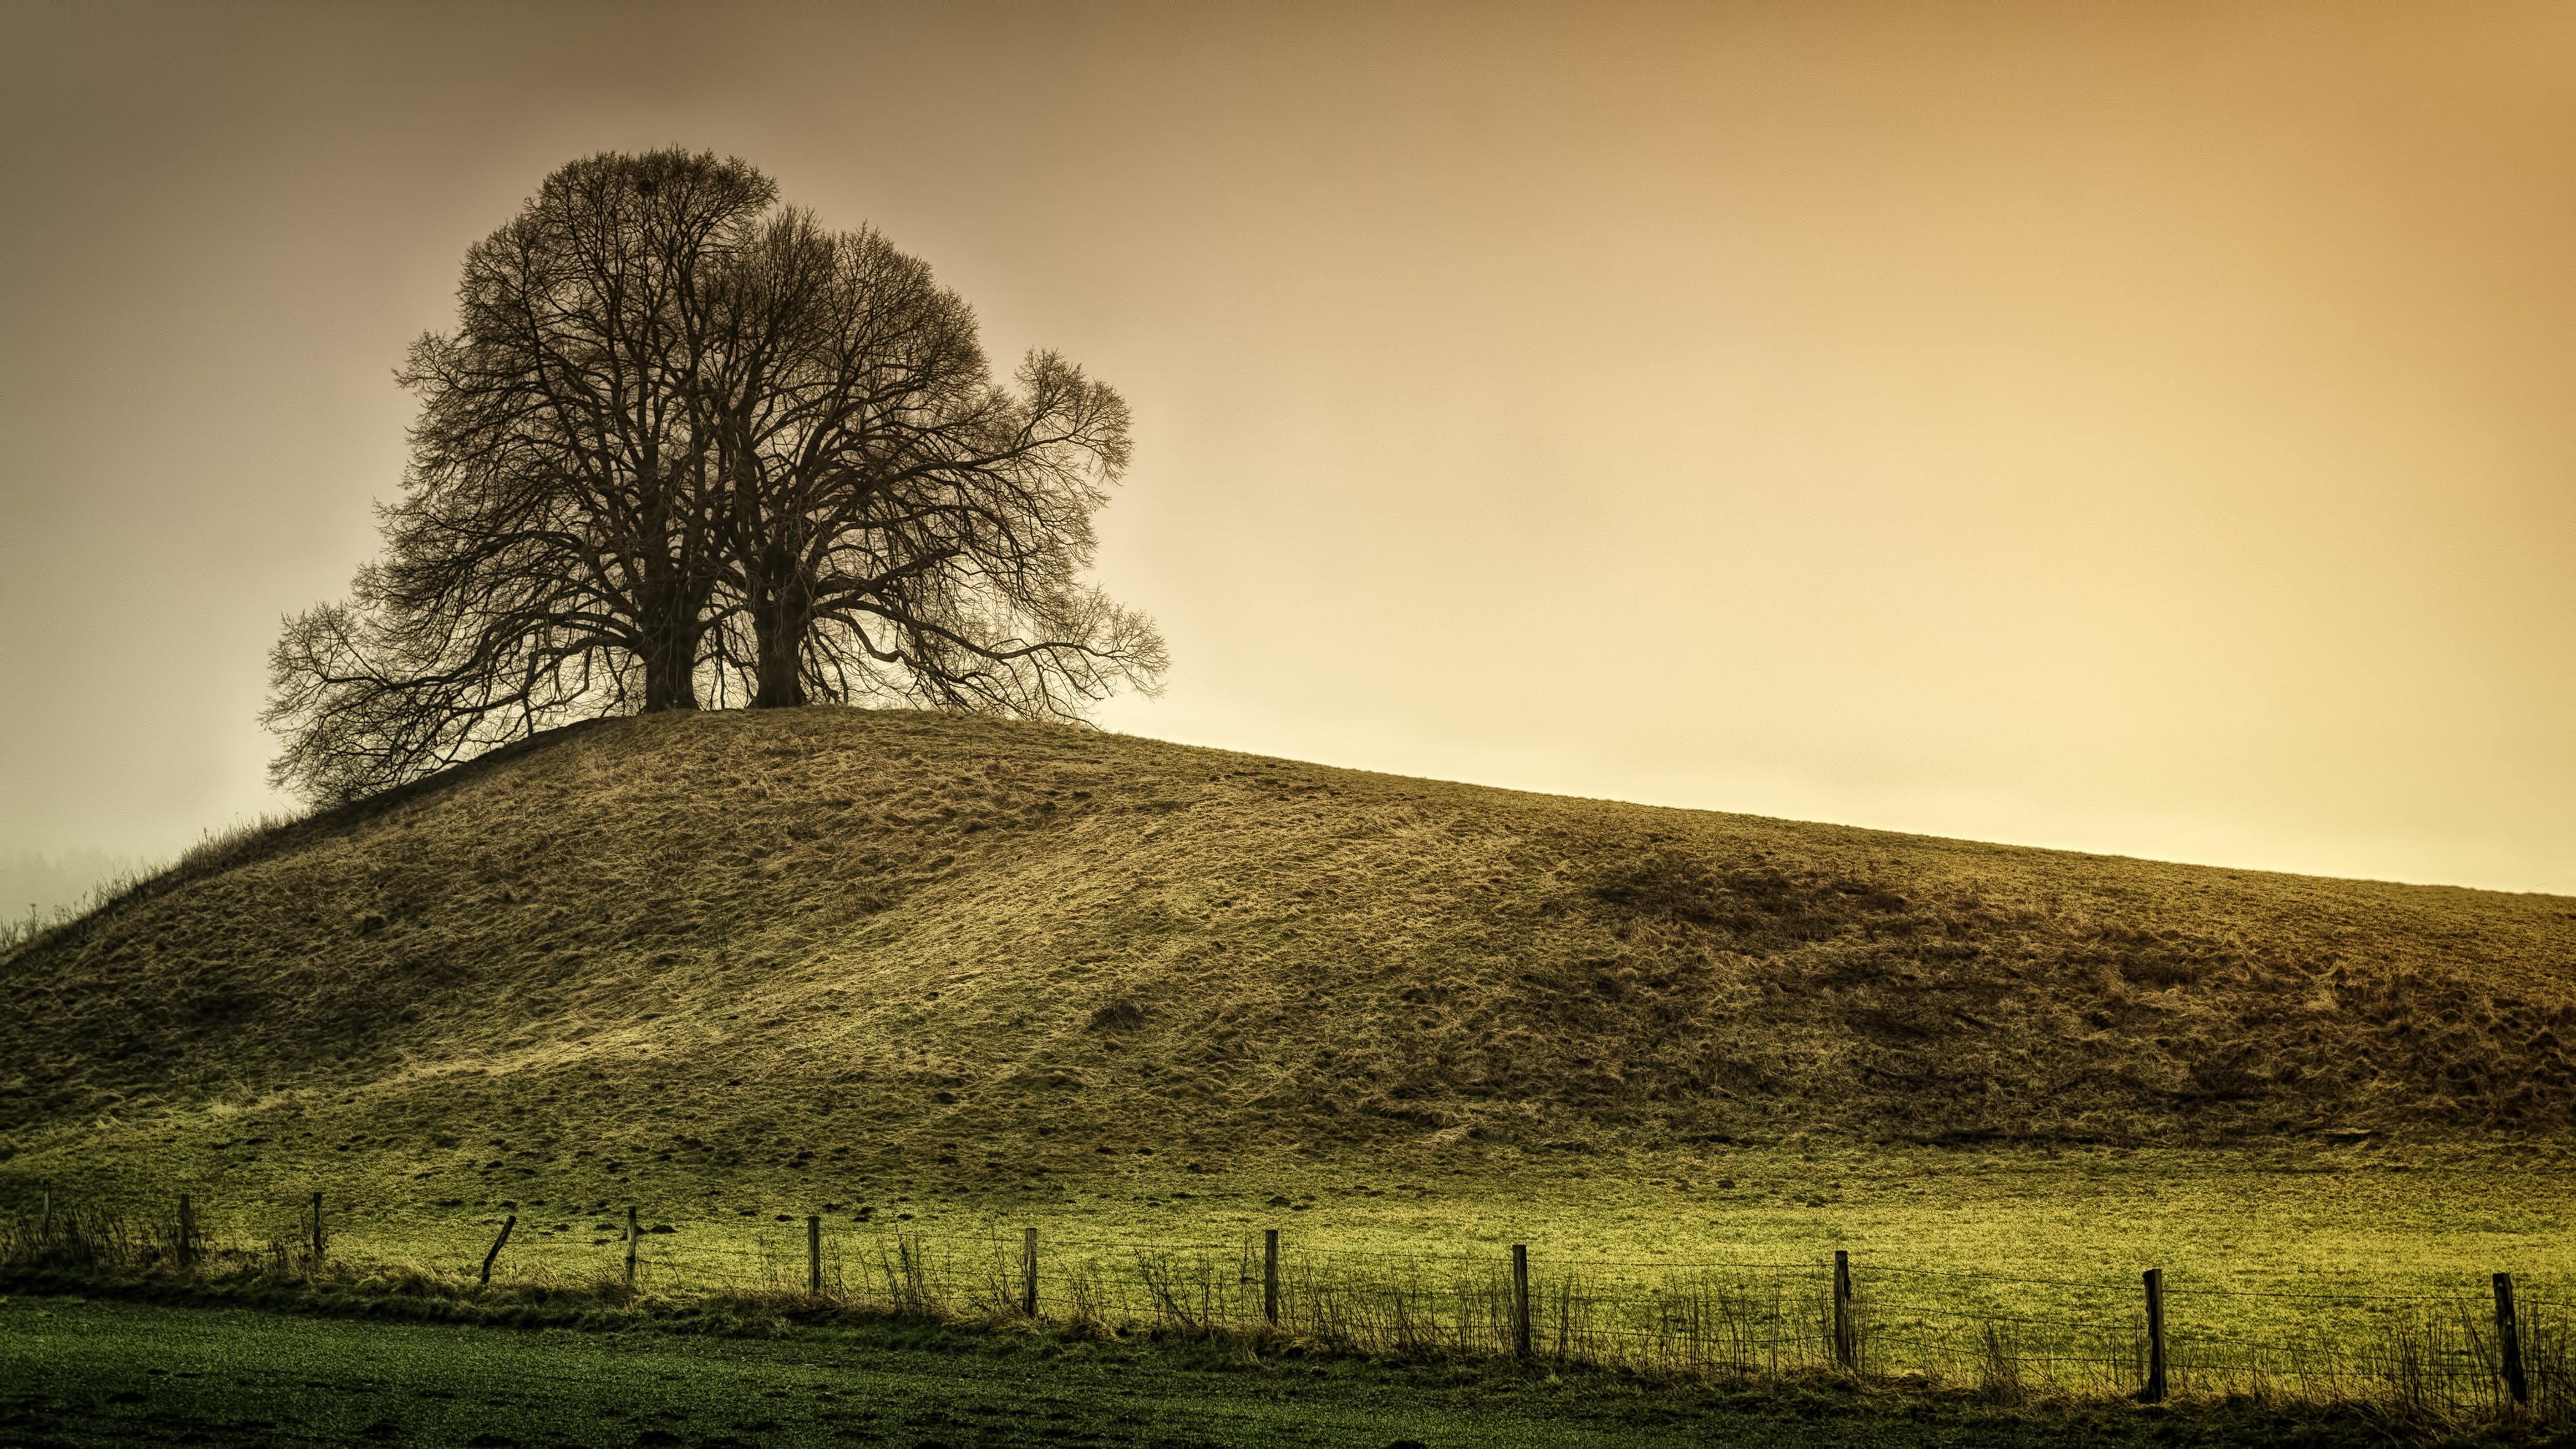 Silhouette of Tree on Top of the Hill